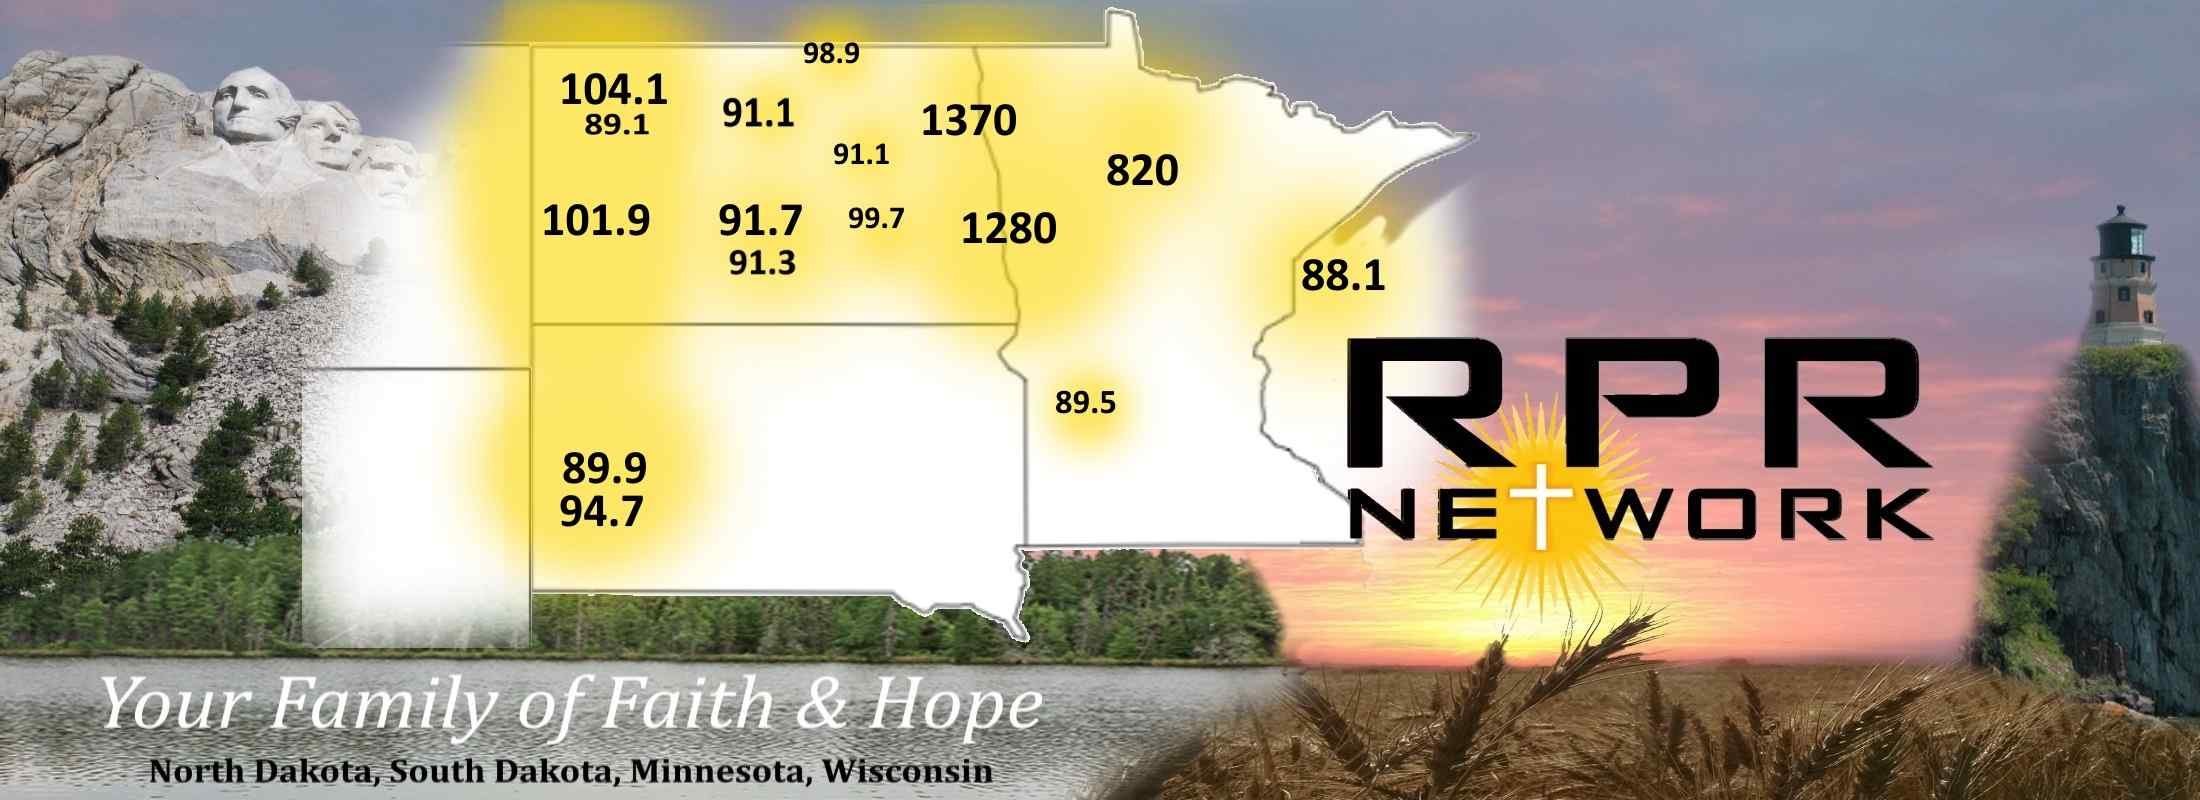 2017 05 a great miracle minnesota company - Current News